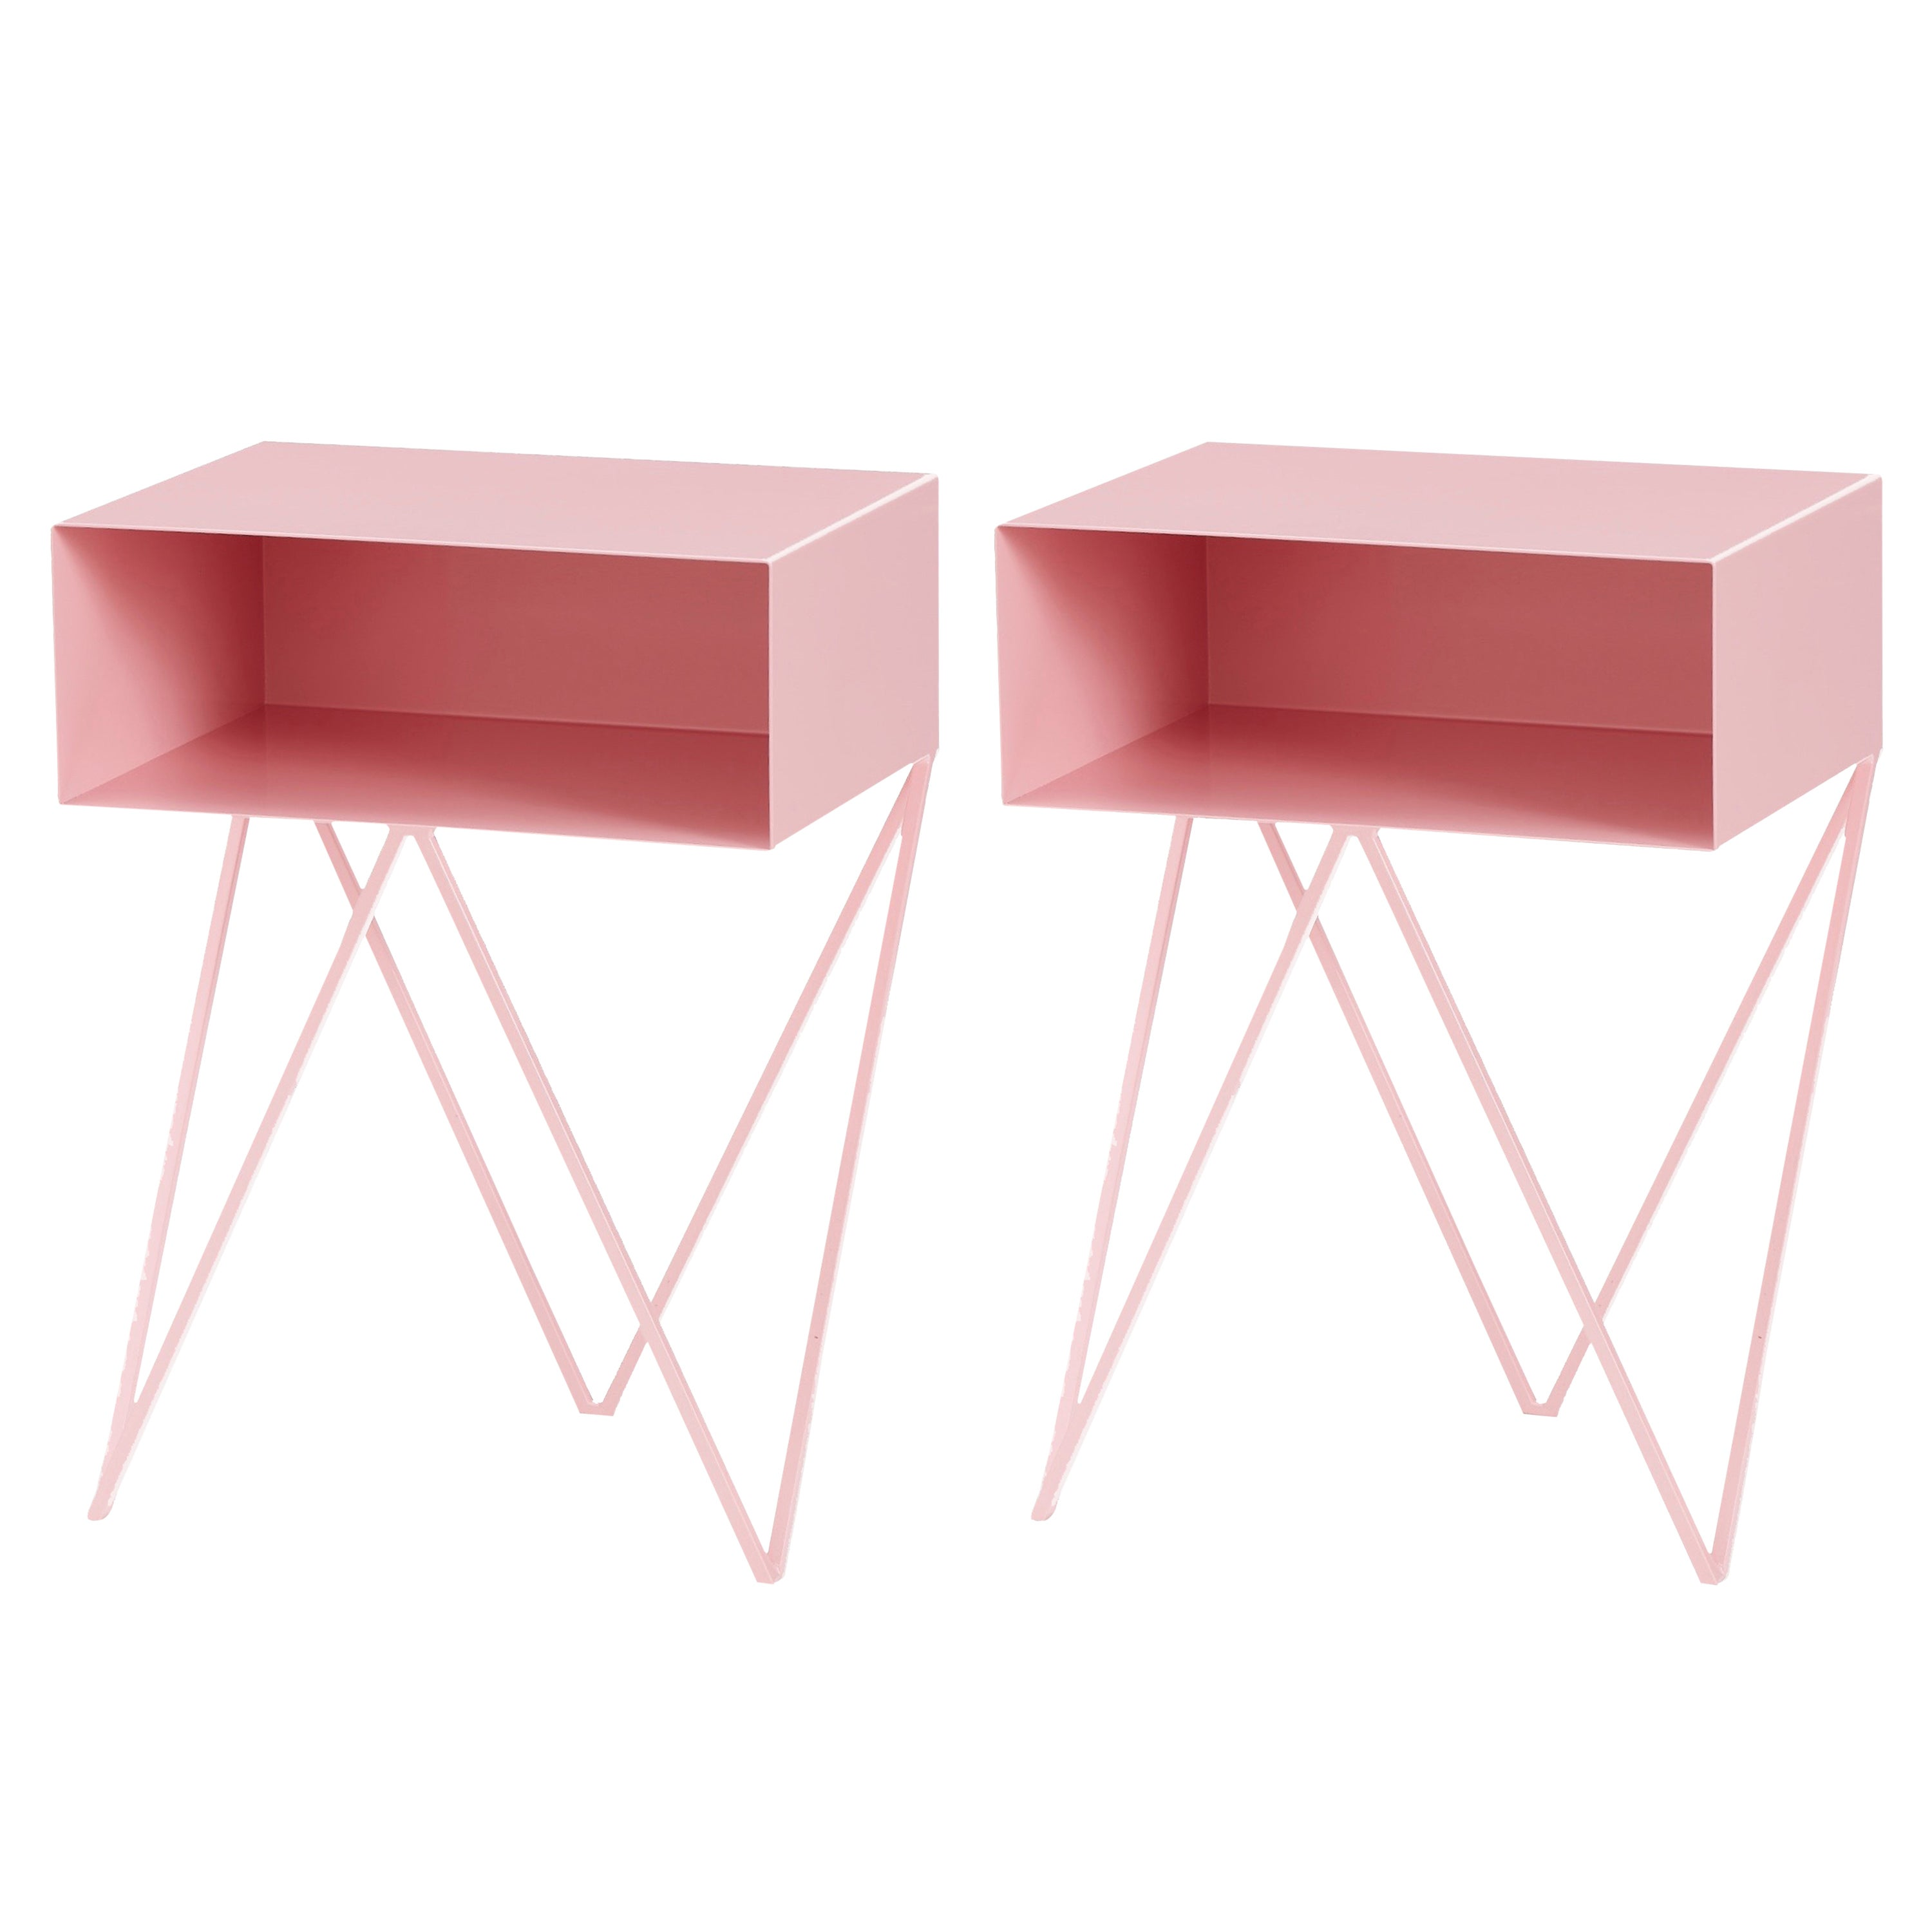 Pair of Pink Powder Coated Steel Robot Bedside Tables